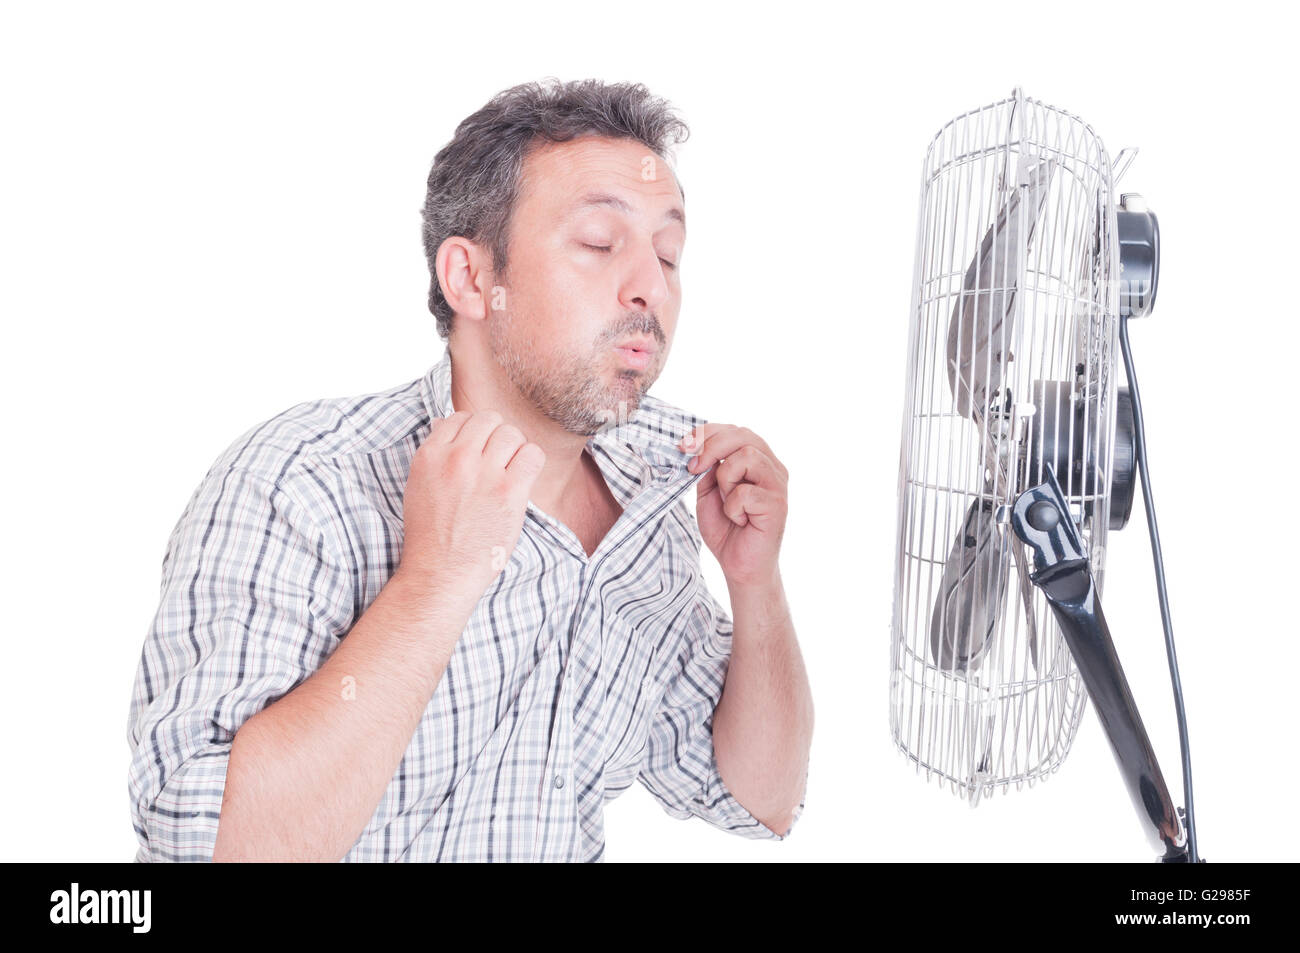 Sweaty man opening shirt in front of cooling fan as refreshing in hot summer concept - Stock Image